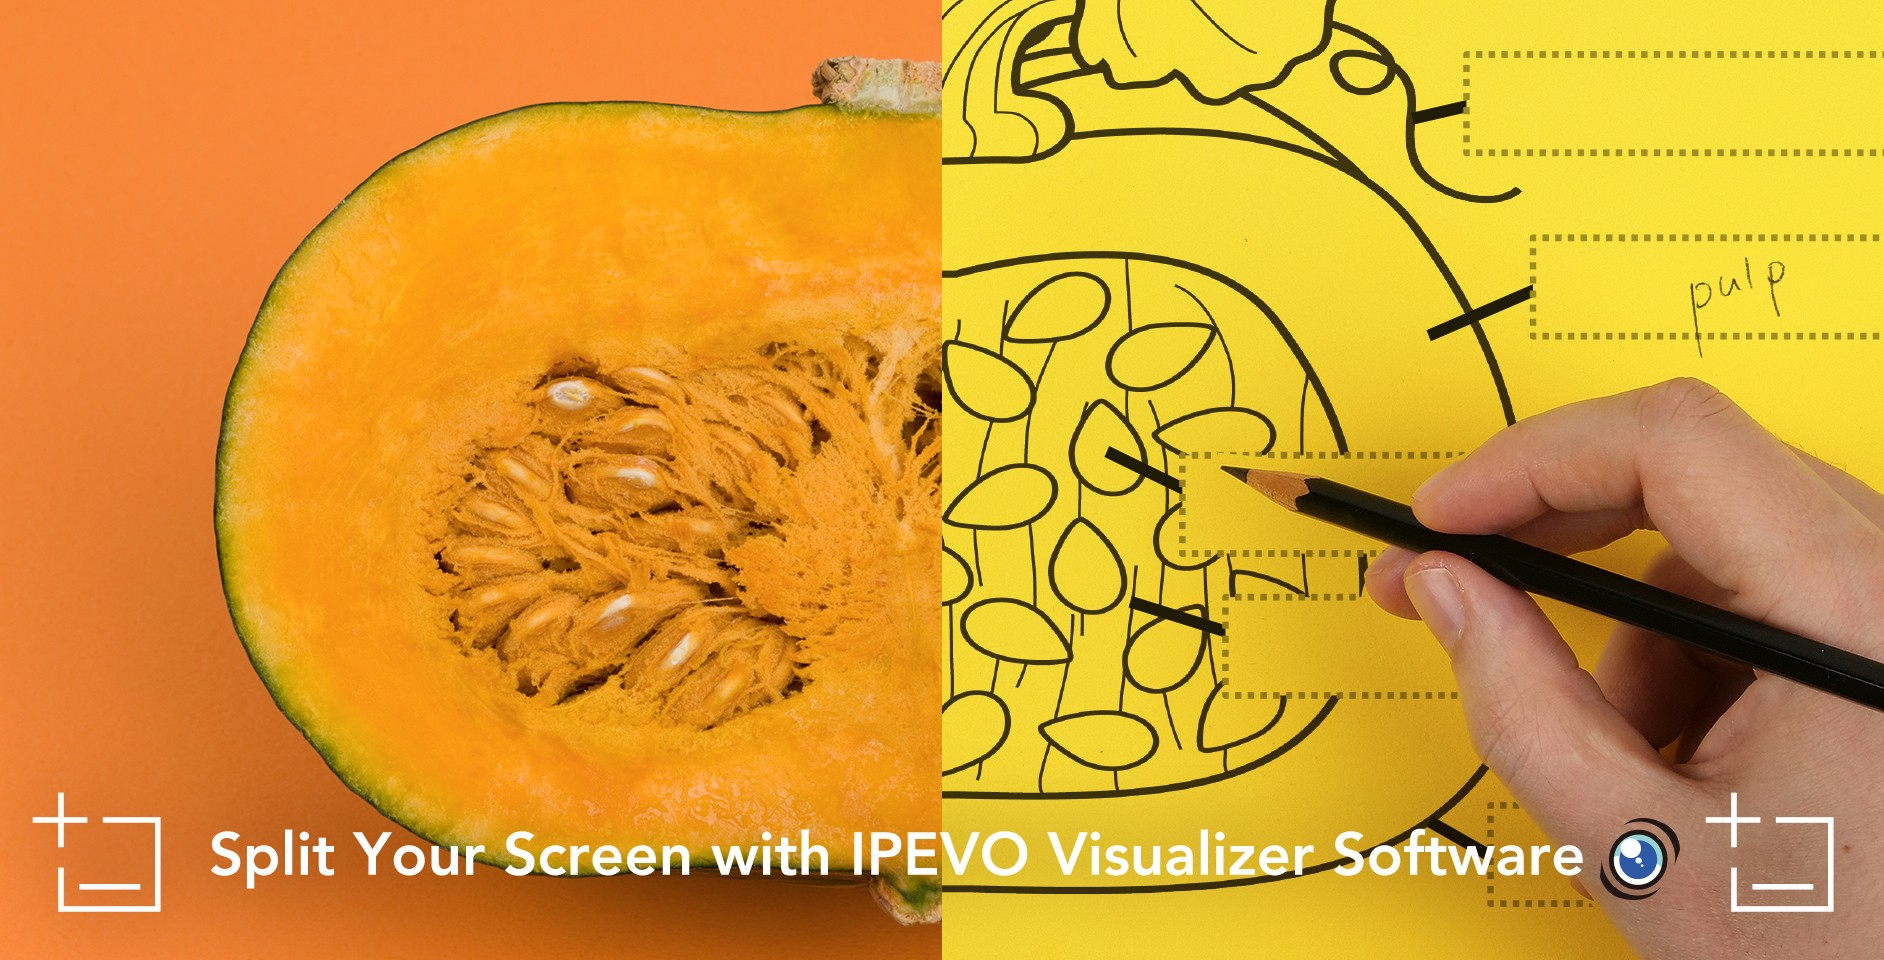 Split Your Screen with IPEVO Visualizer Software